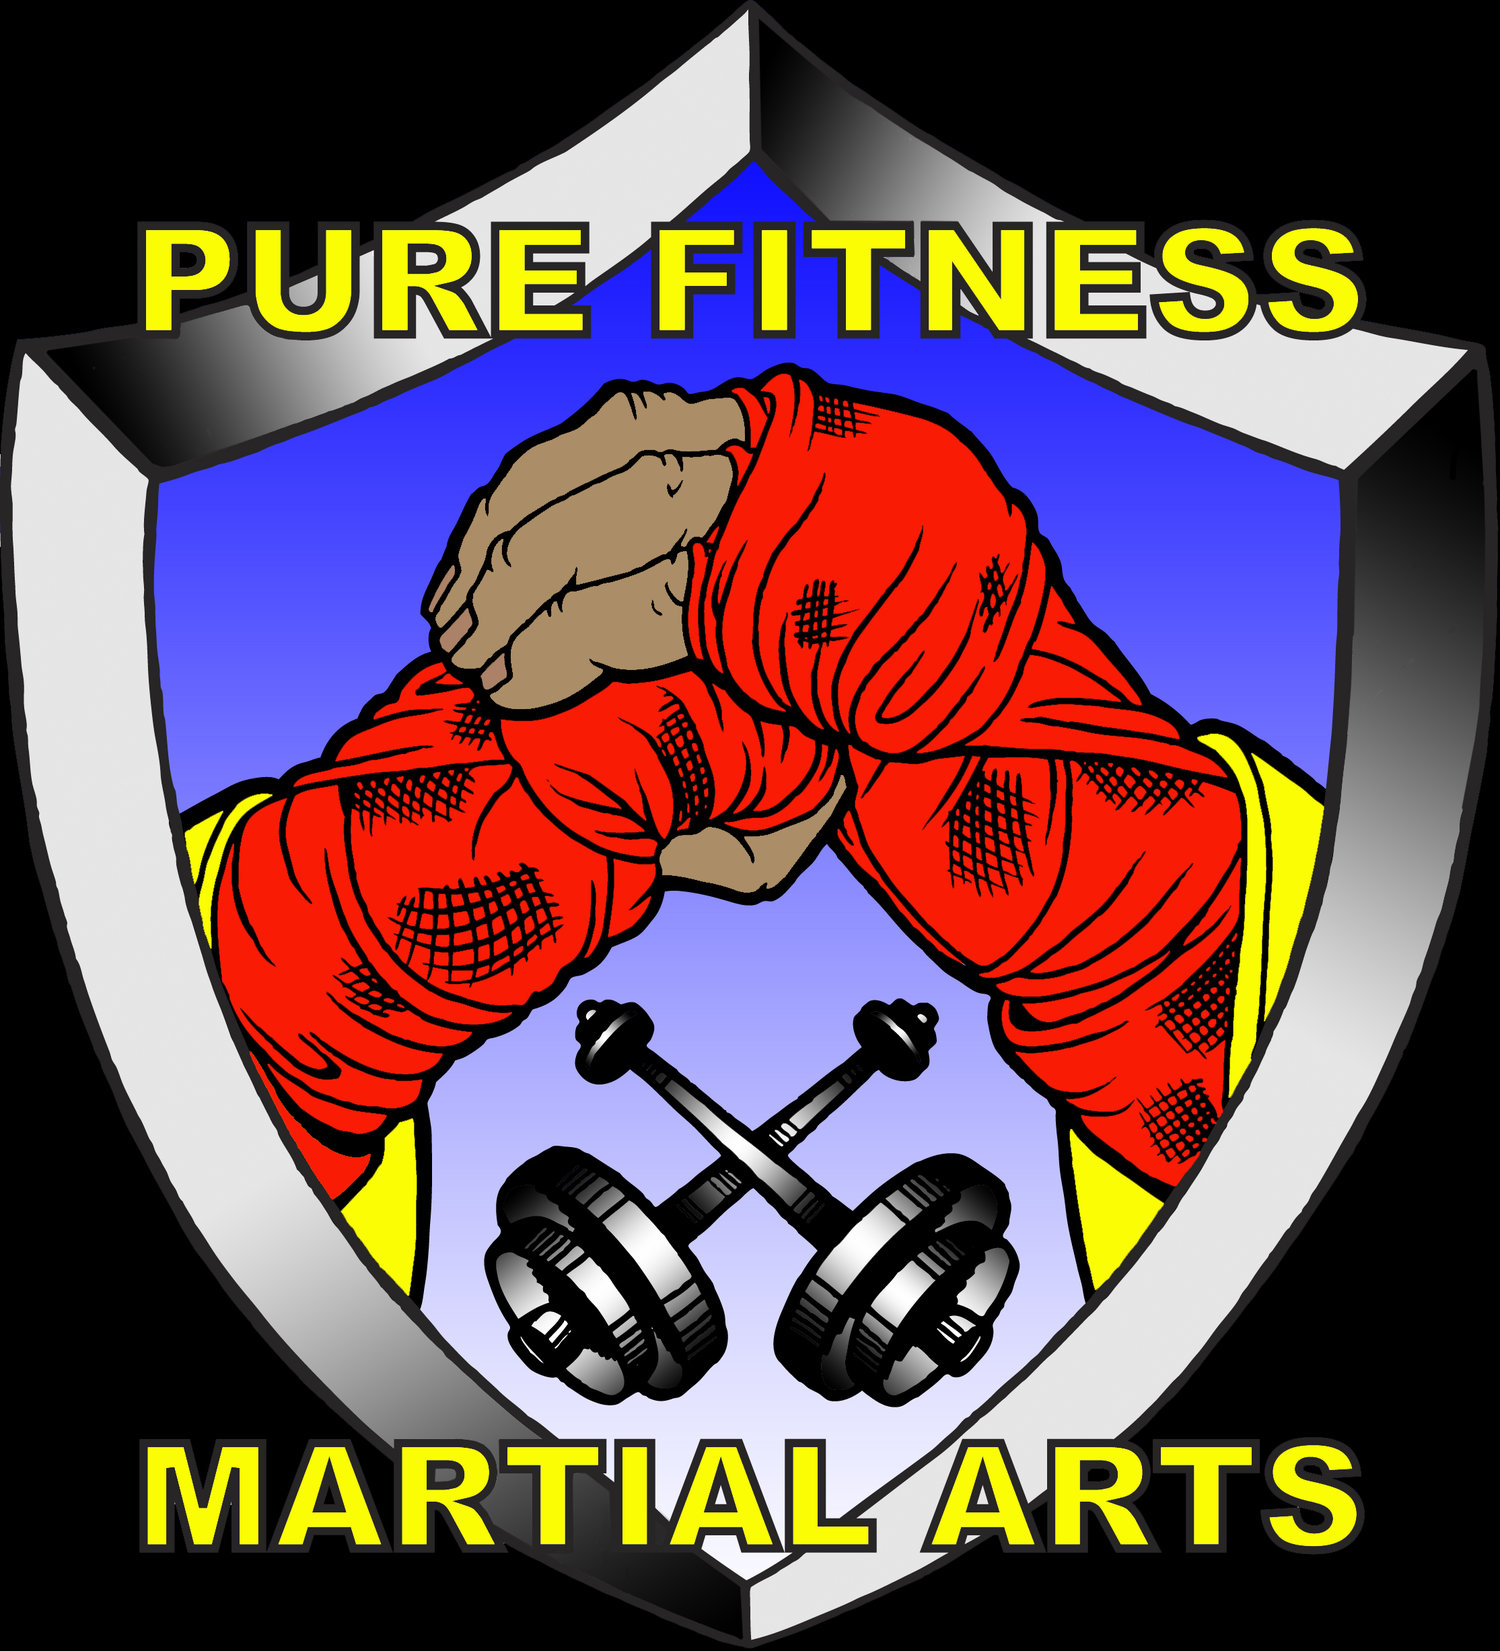 Pure Fitness Martial Arts